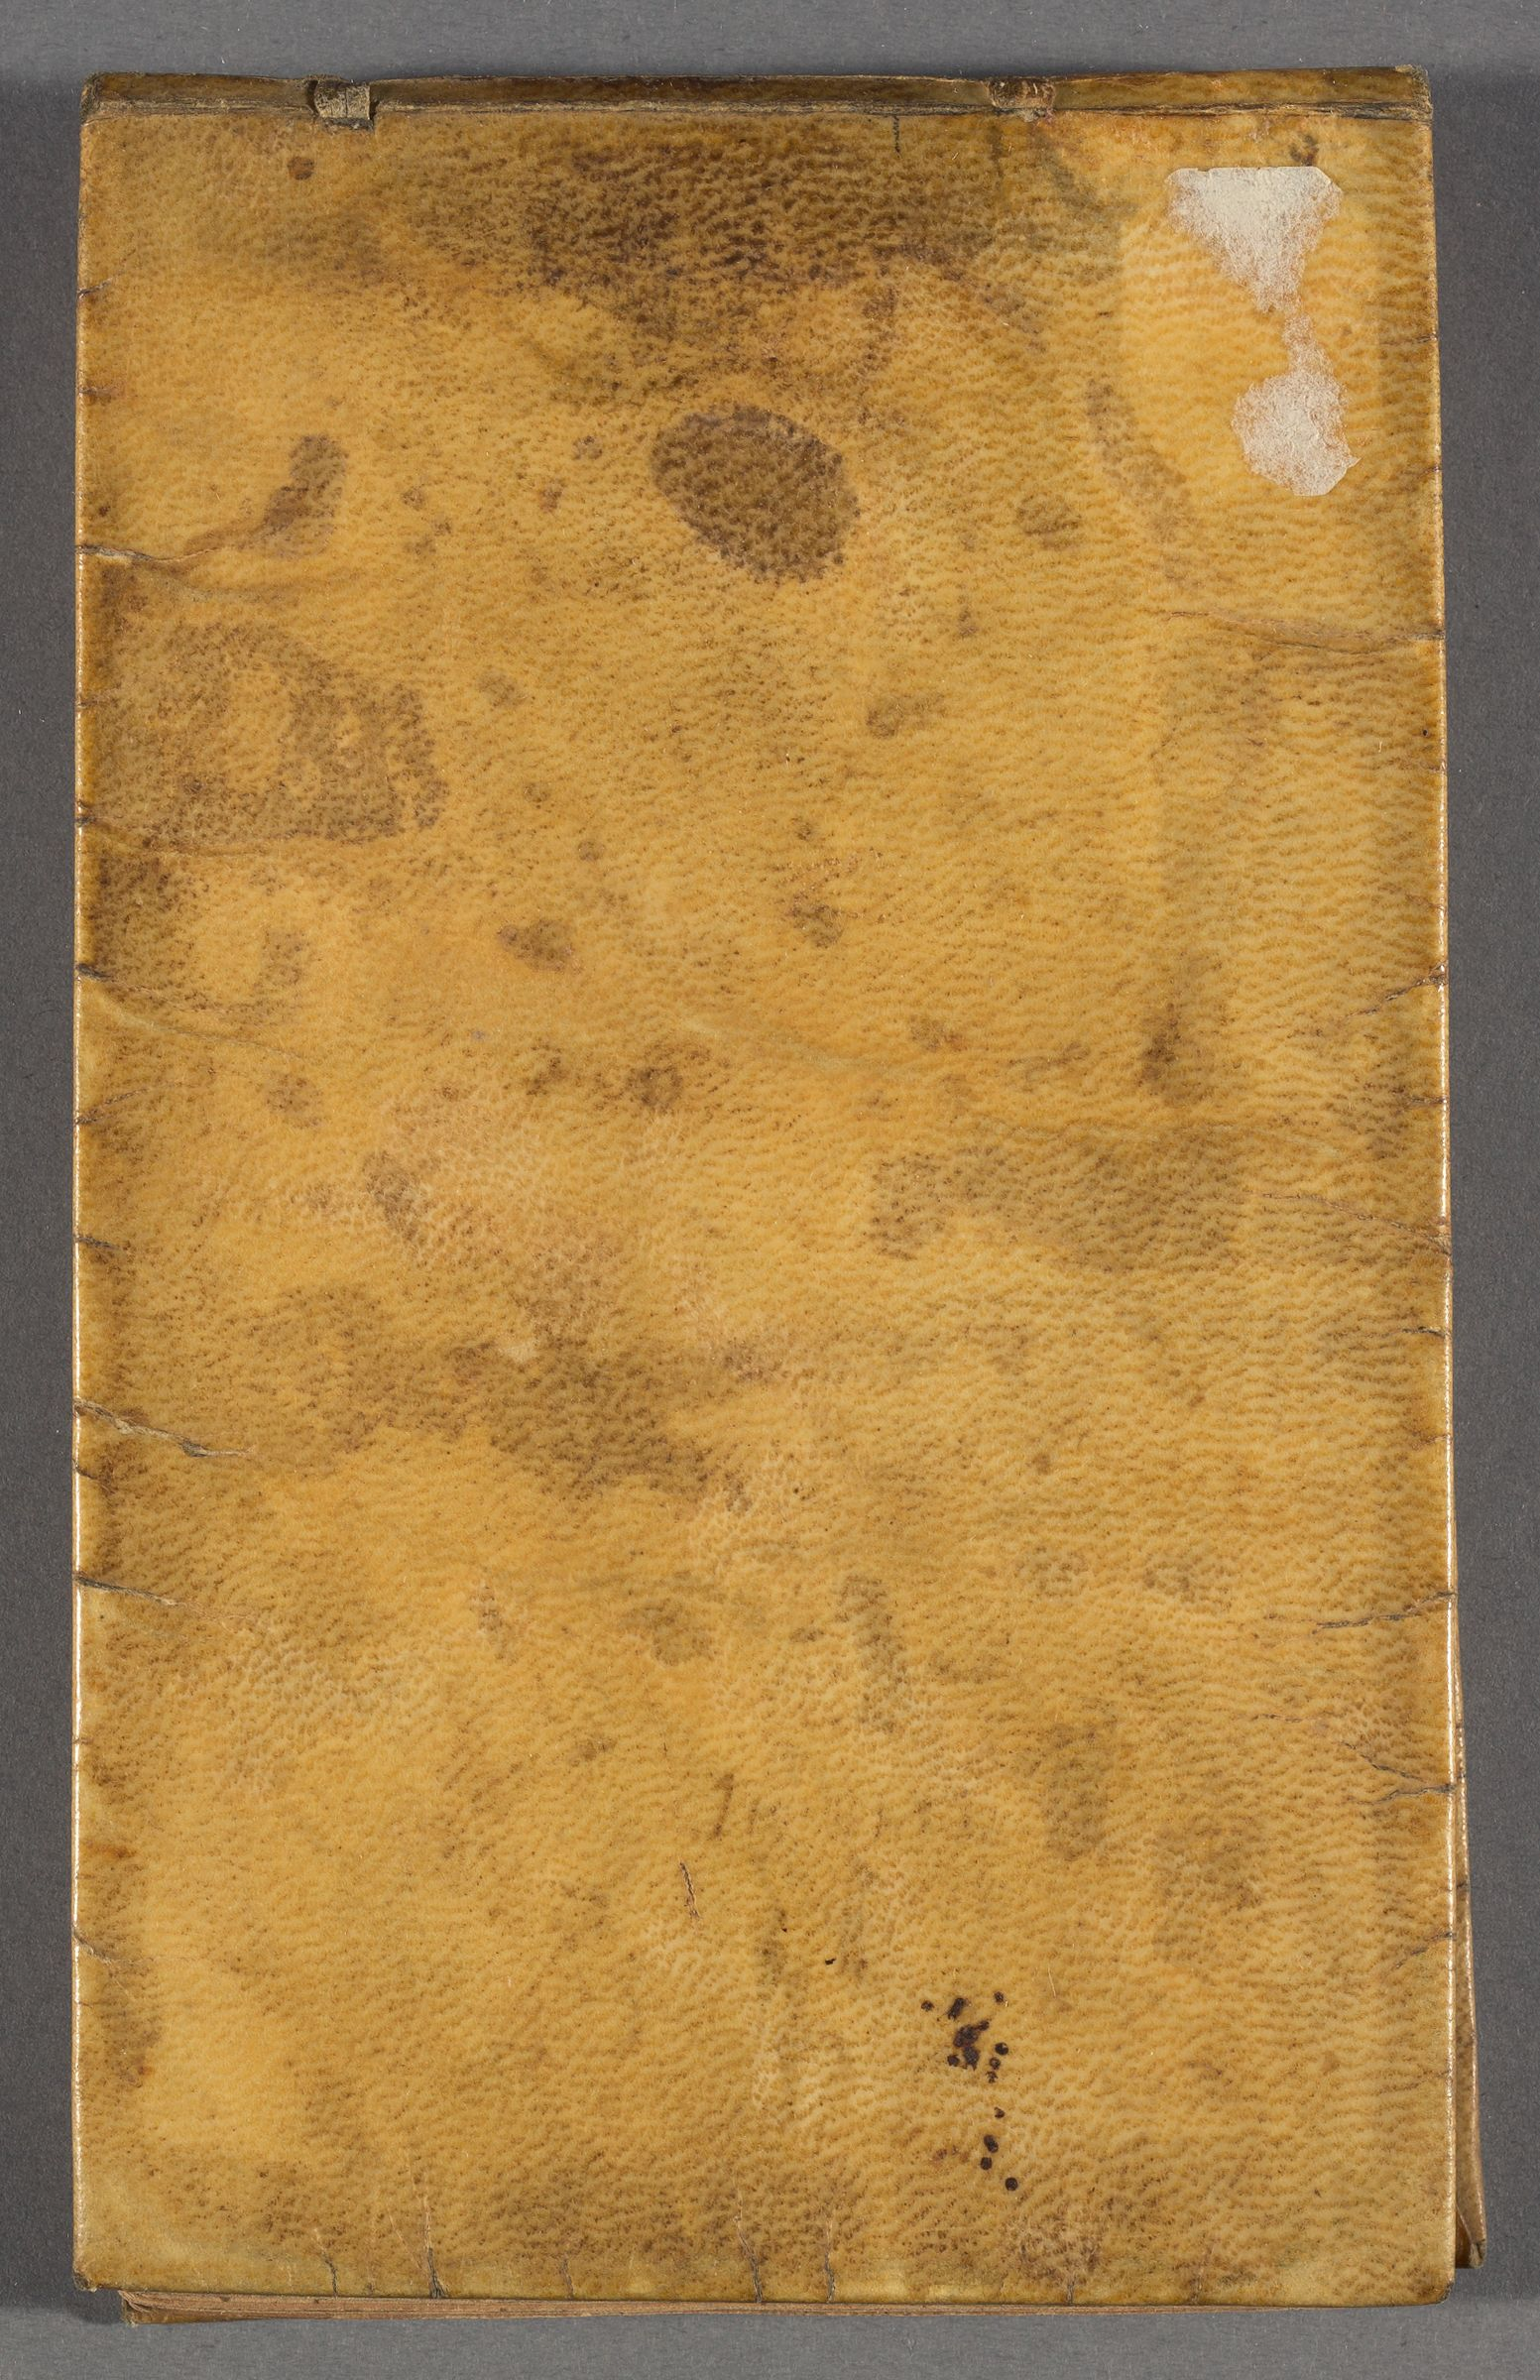 Sermon notes compiled by Warham Williams, 1716-1718